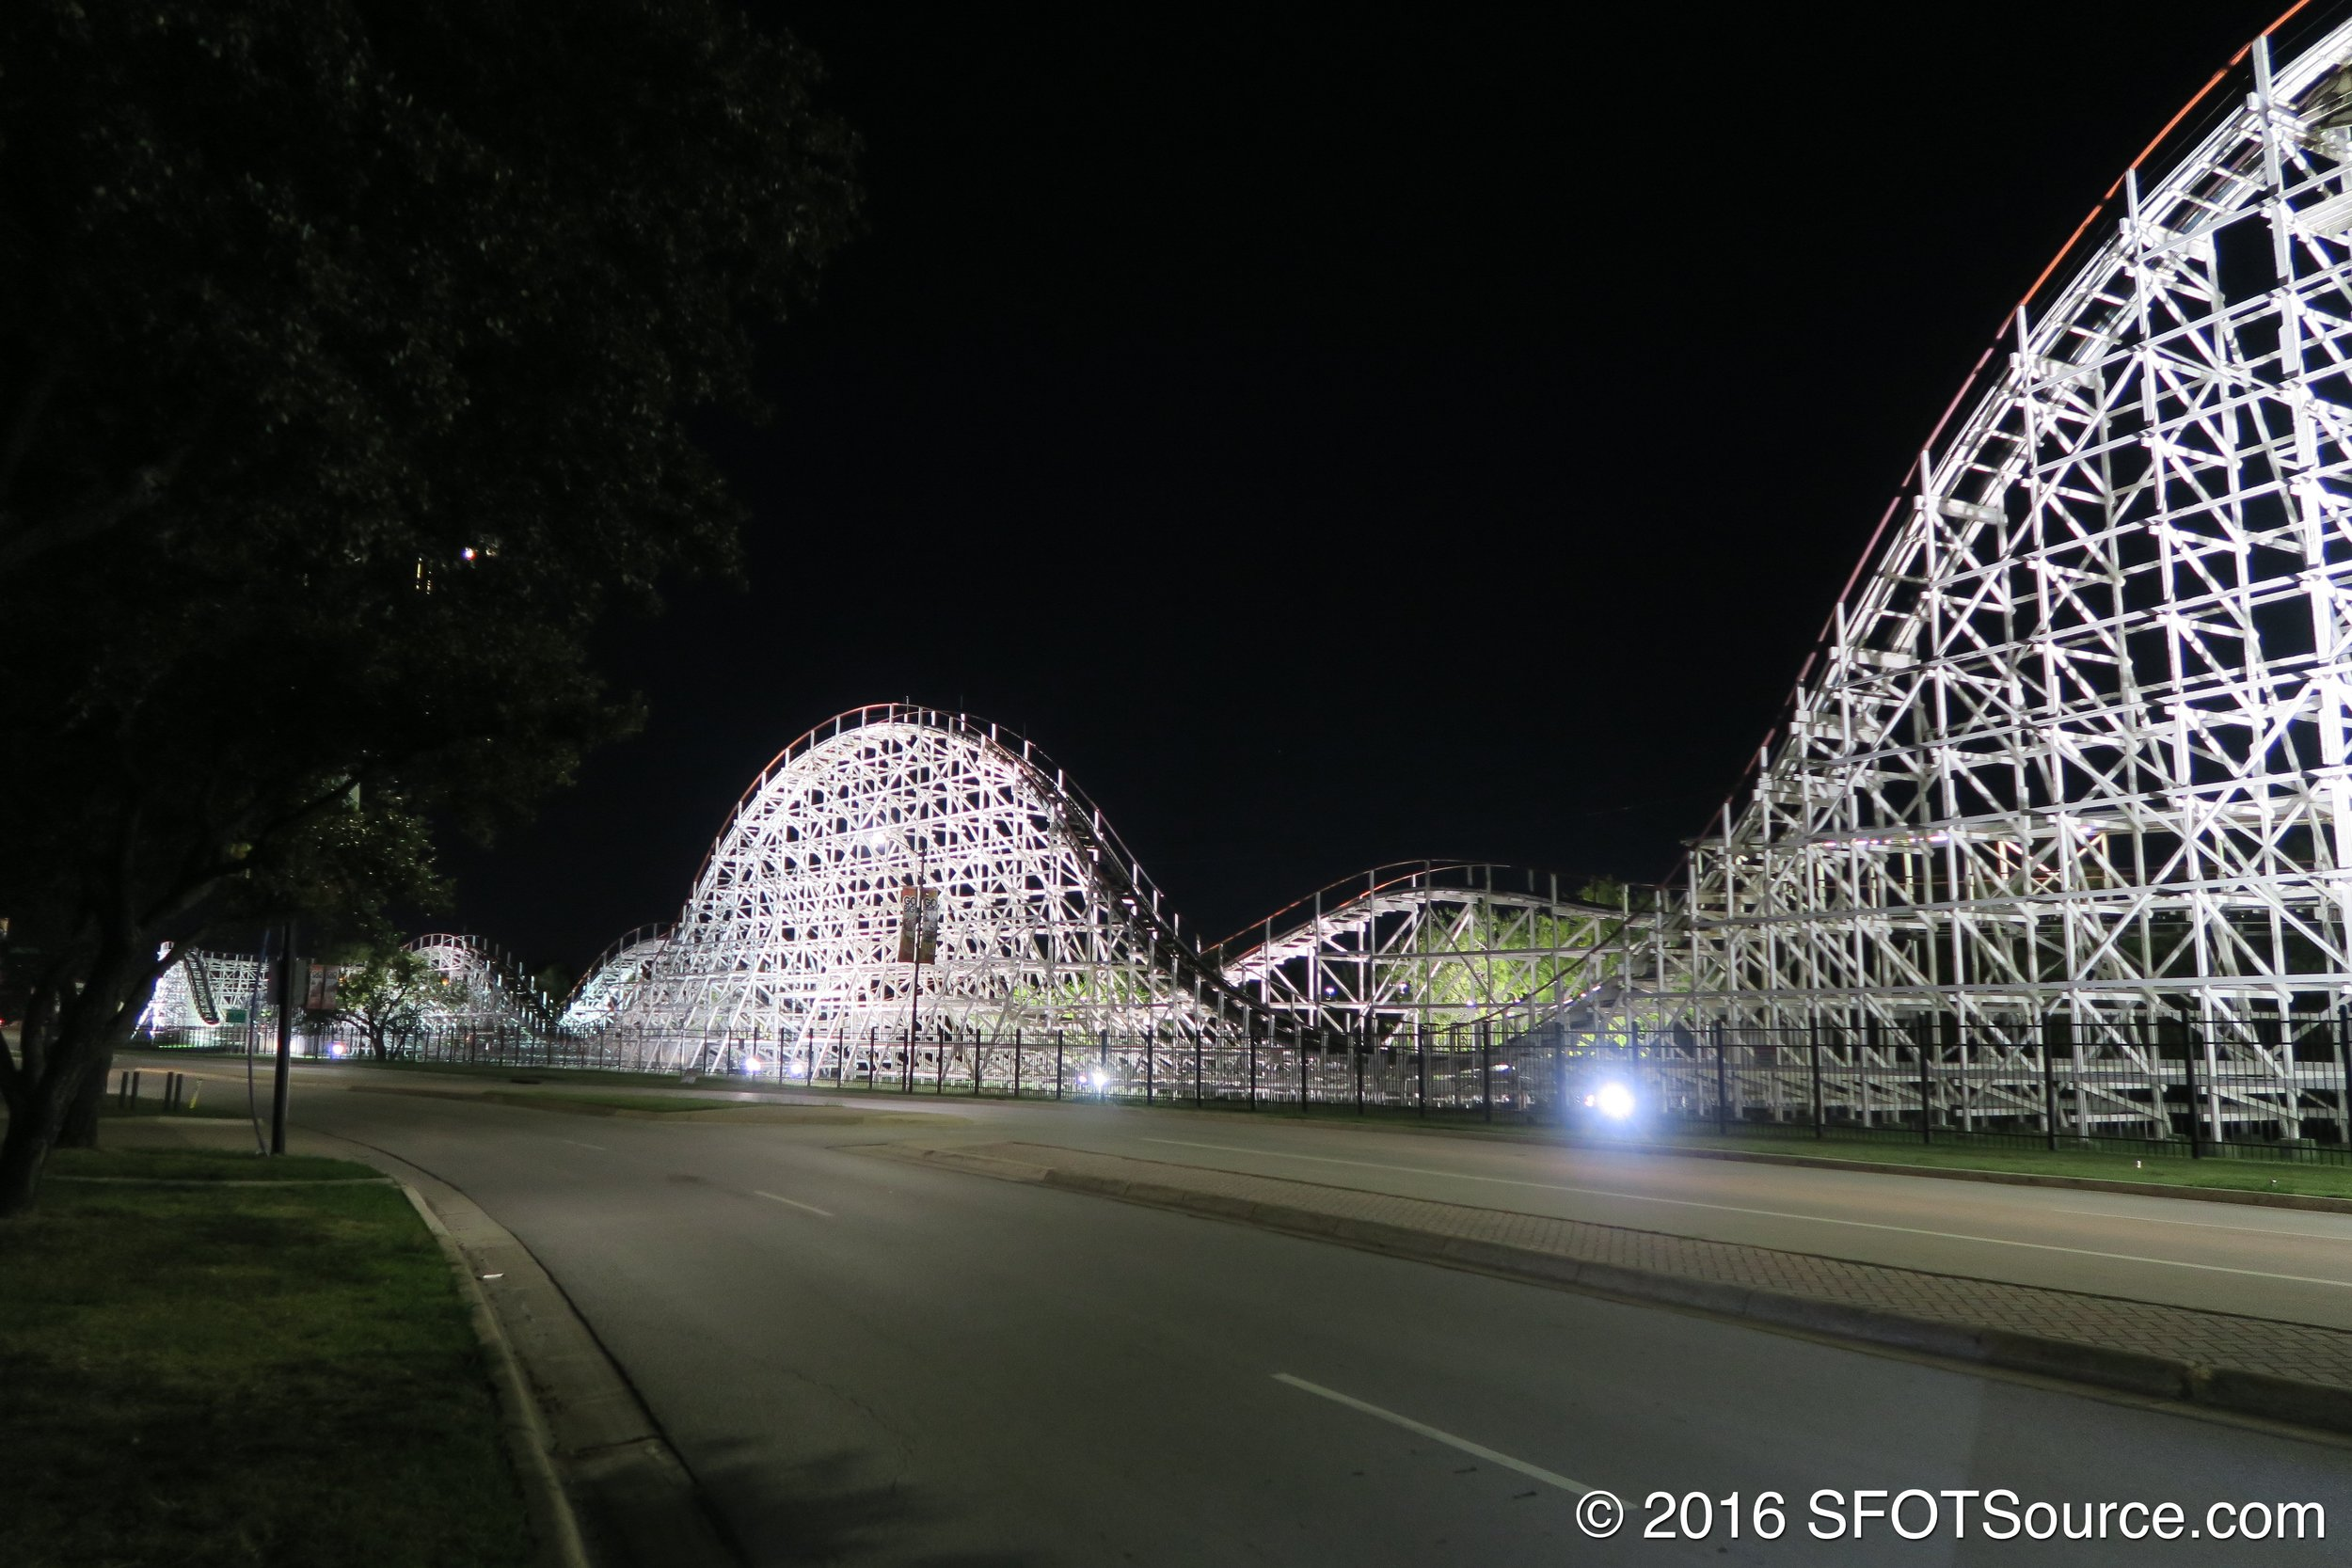 Another shot of Judge Roy Scream at night.